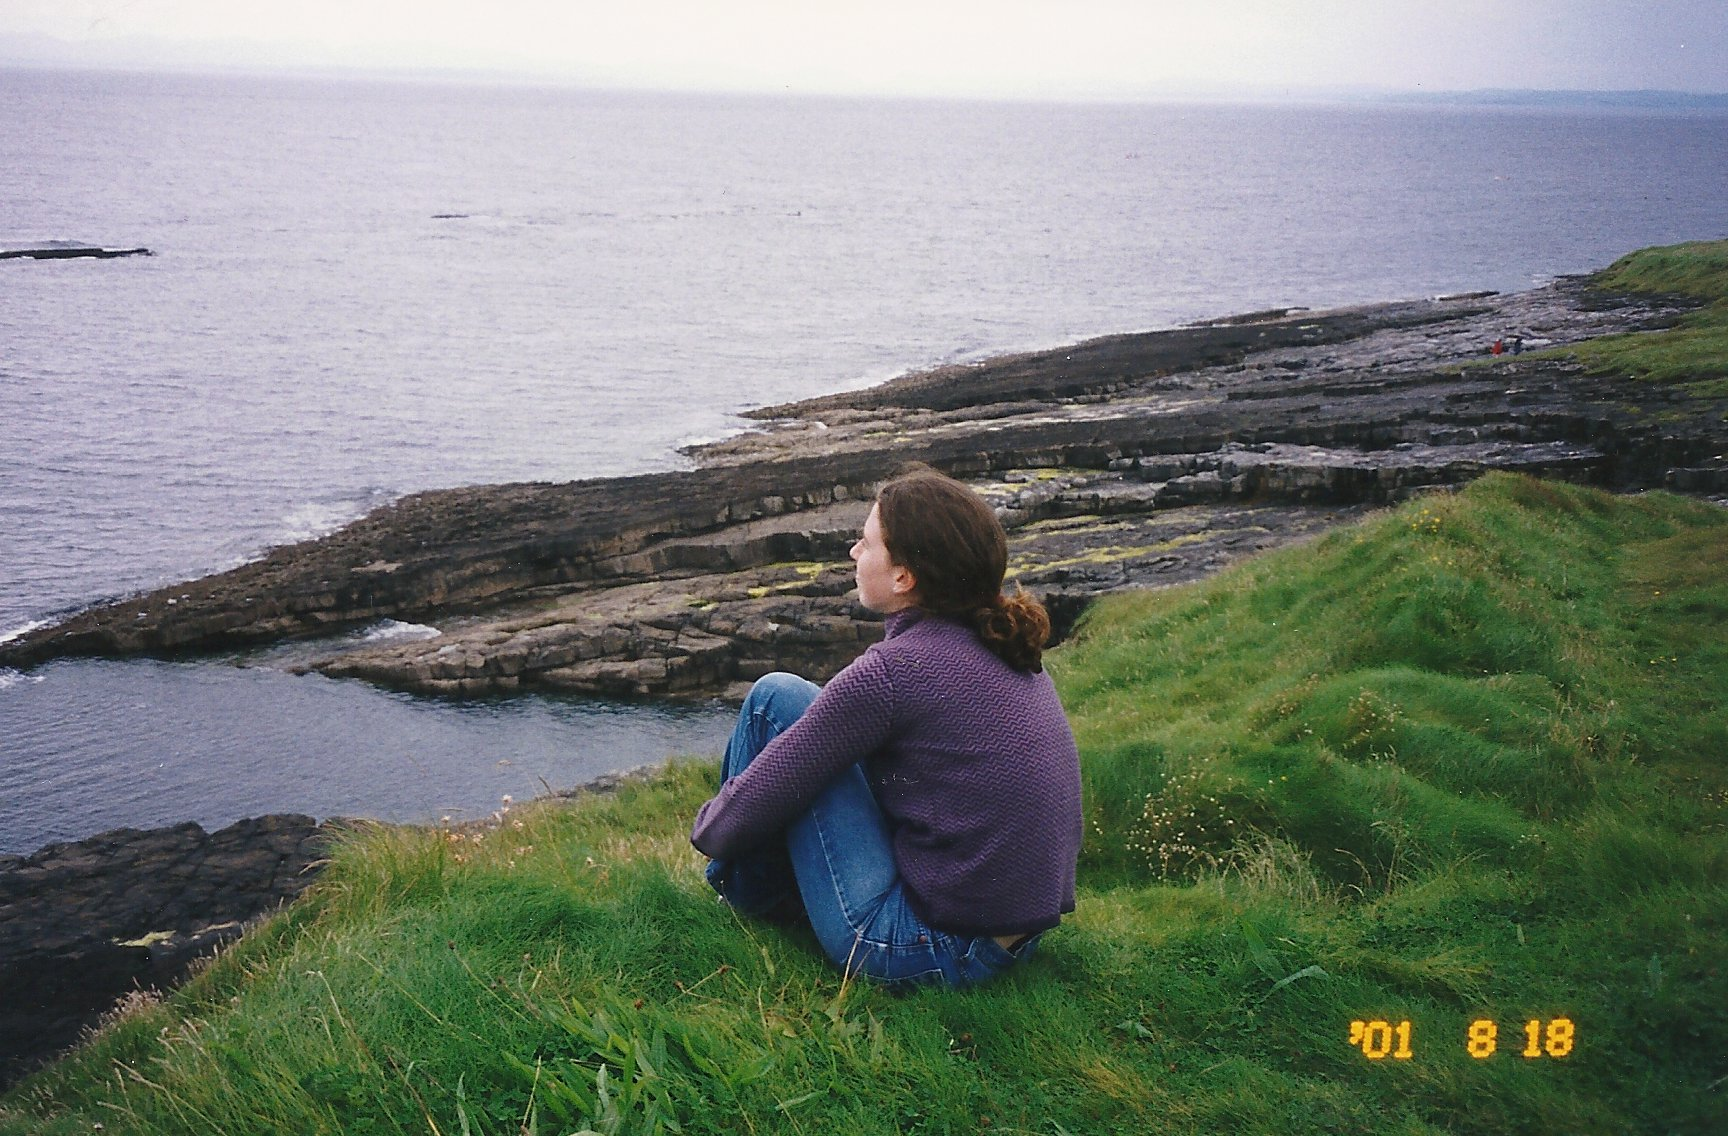 donegal august 2001